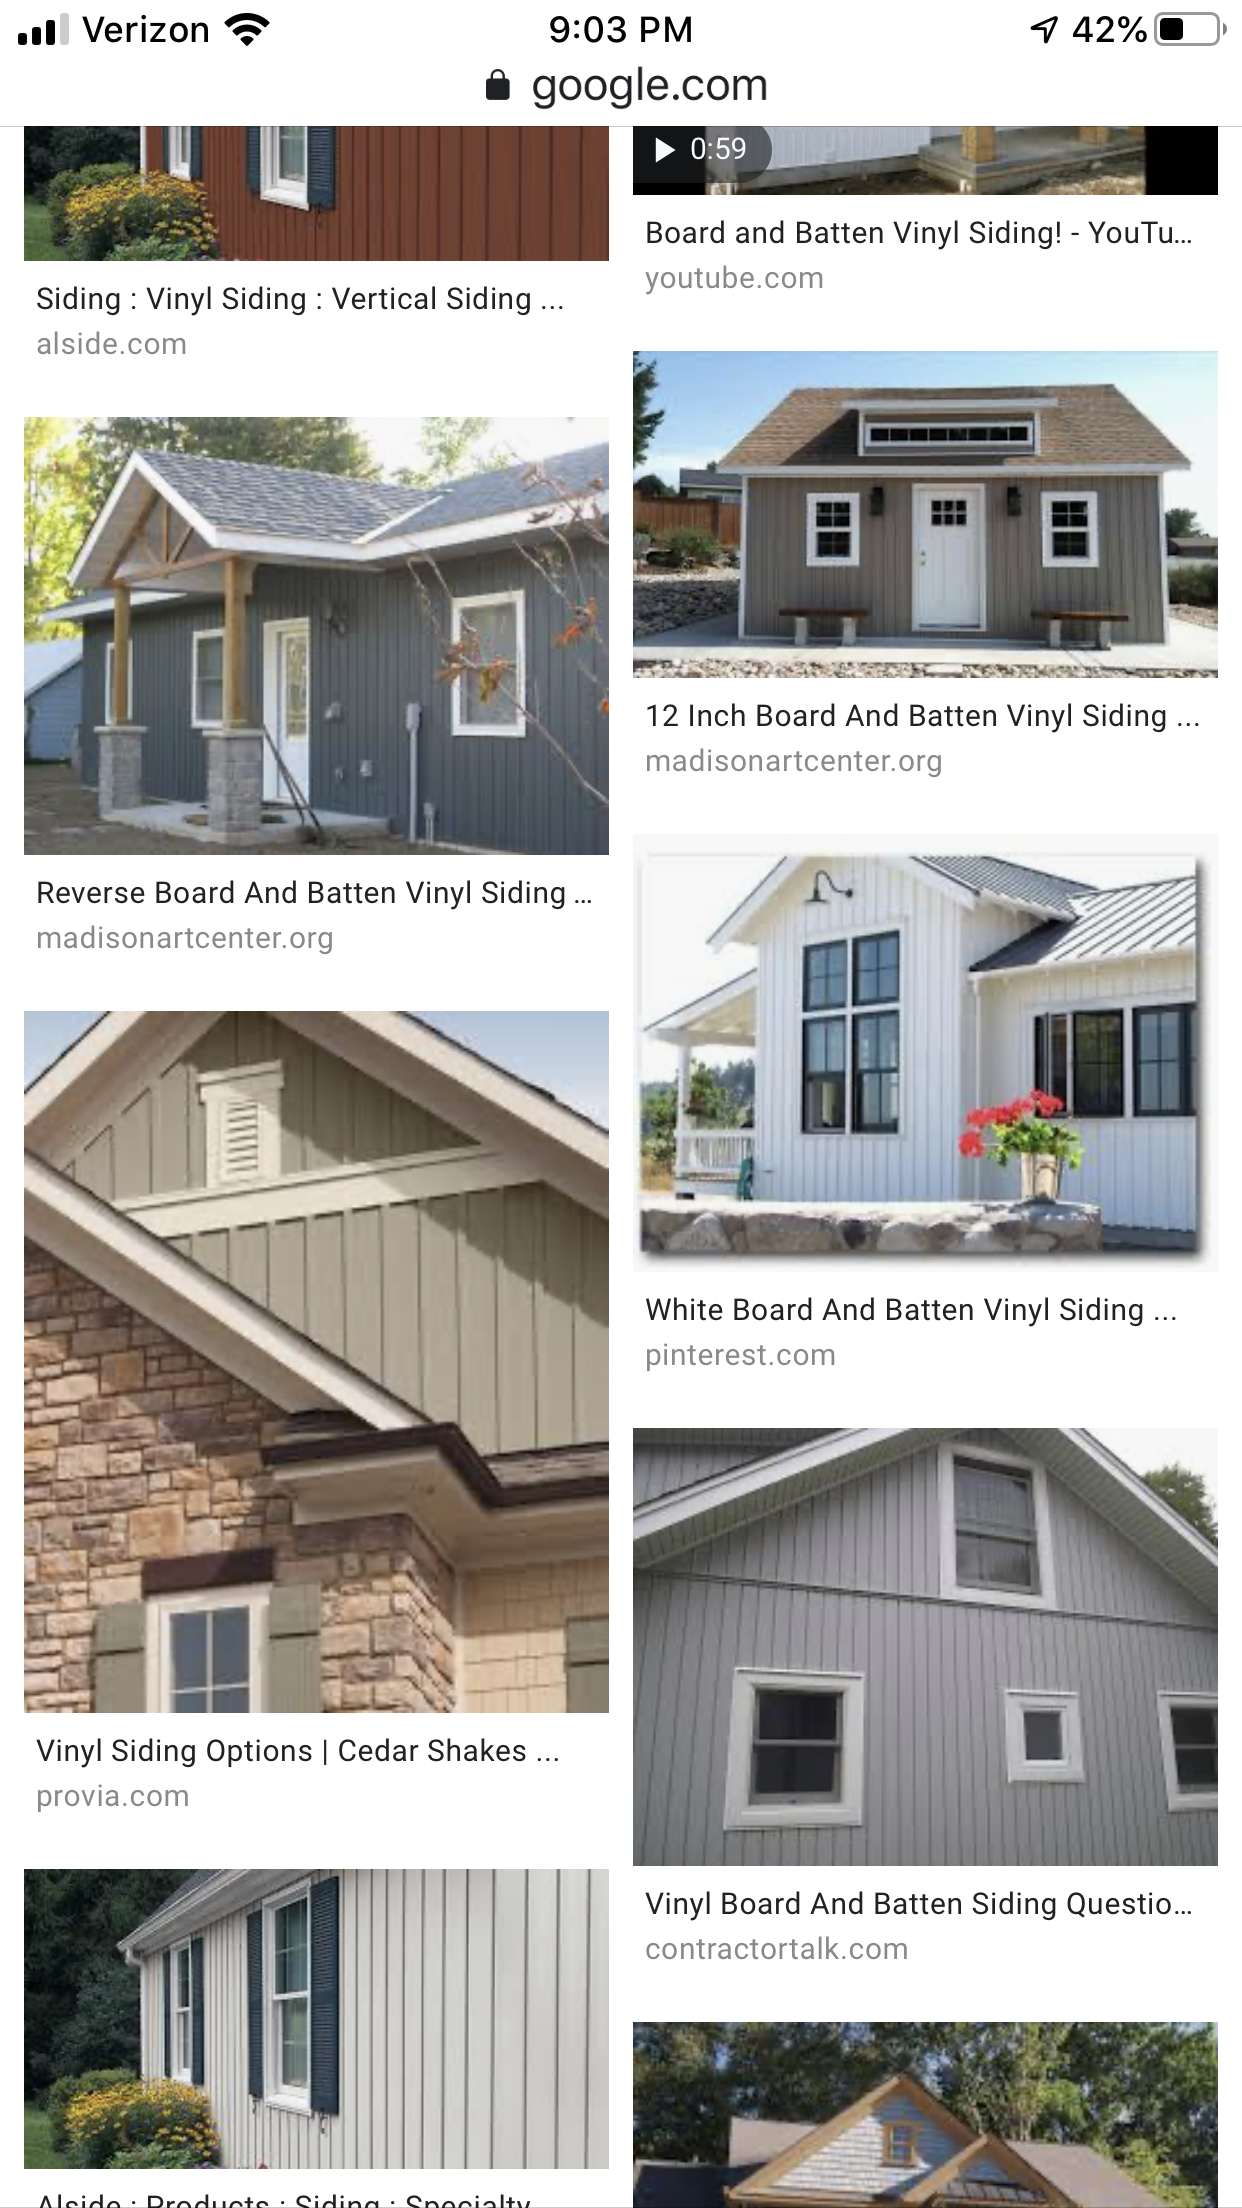 Pin By Jody Loudermilk On Exterior Home Ideas Vinyl Siding Options Siding Options Vertical Siding